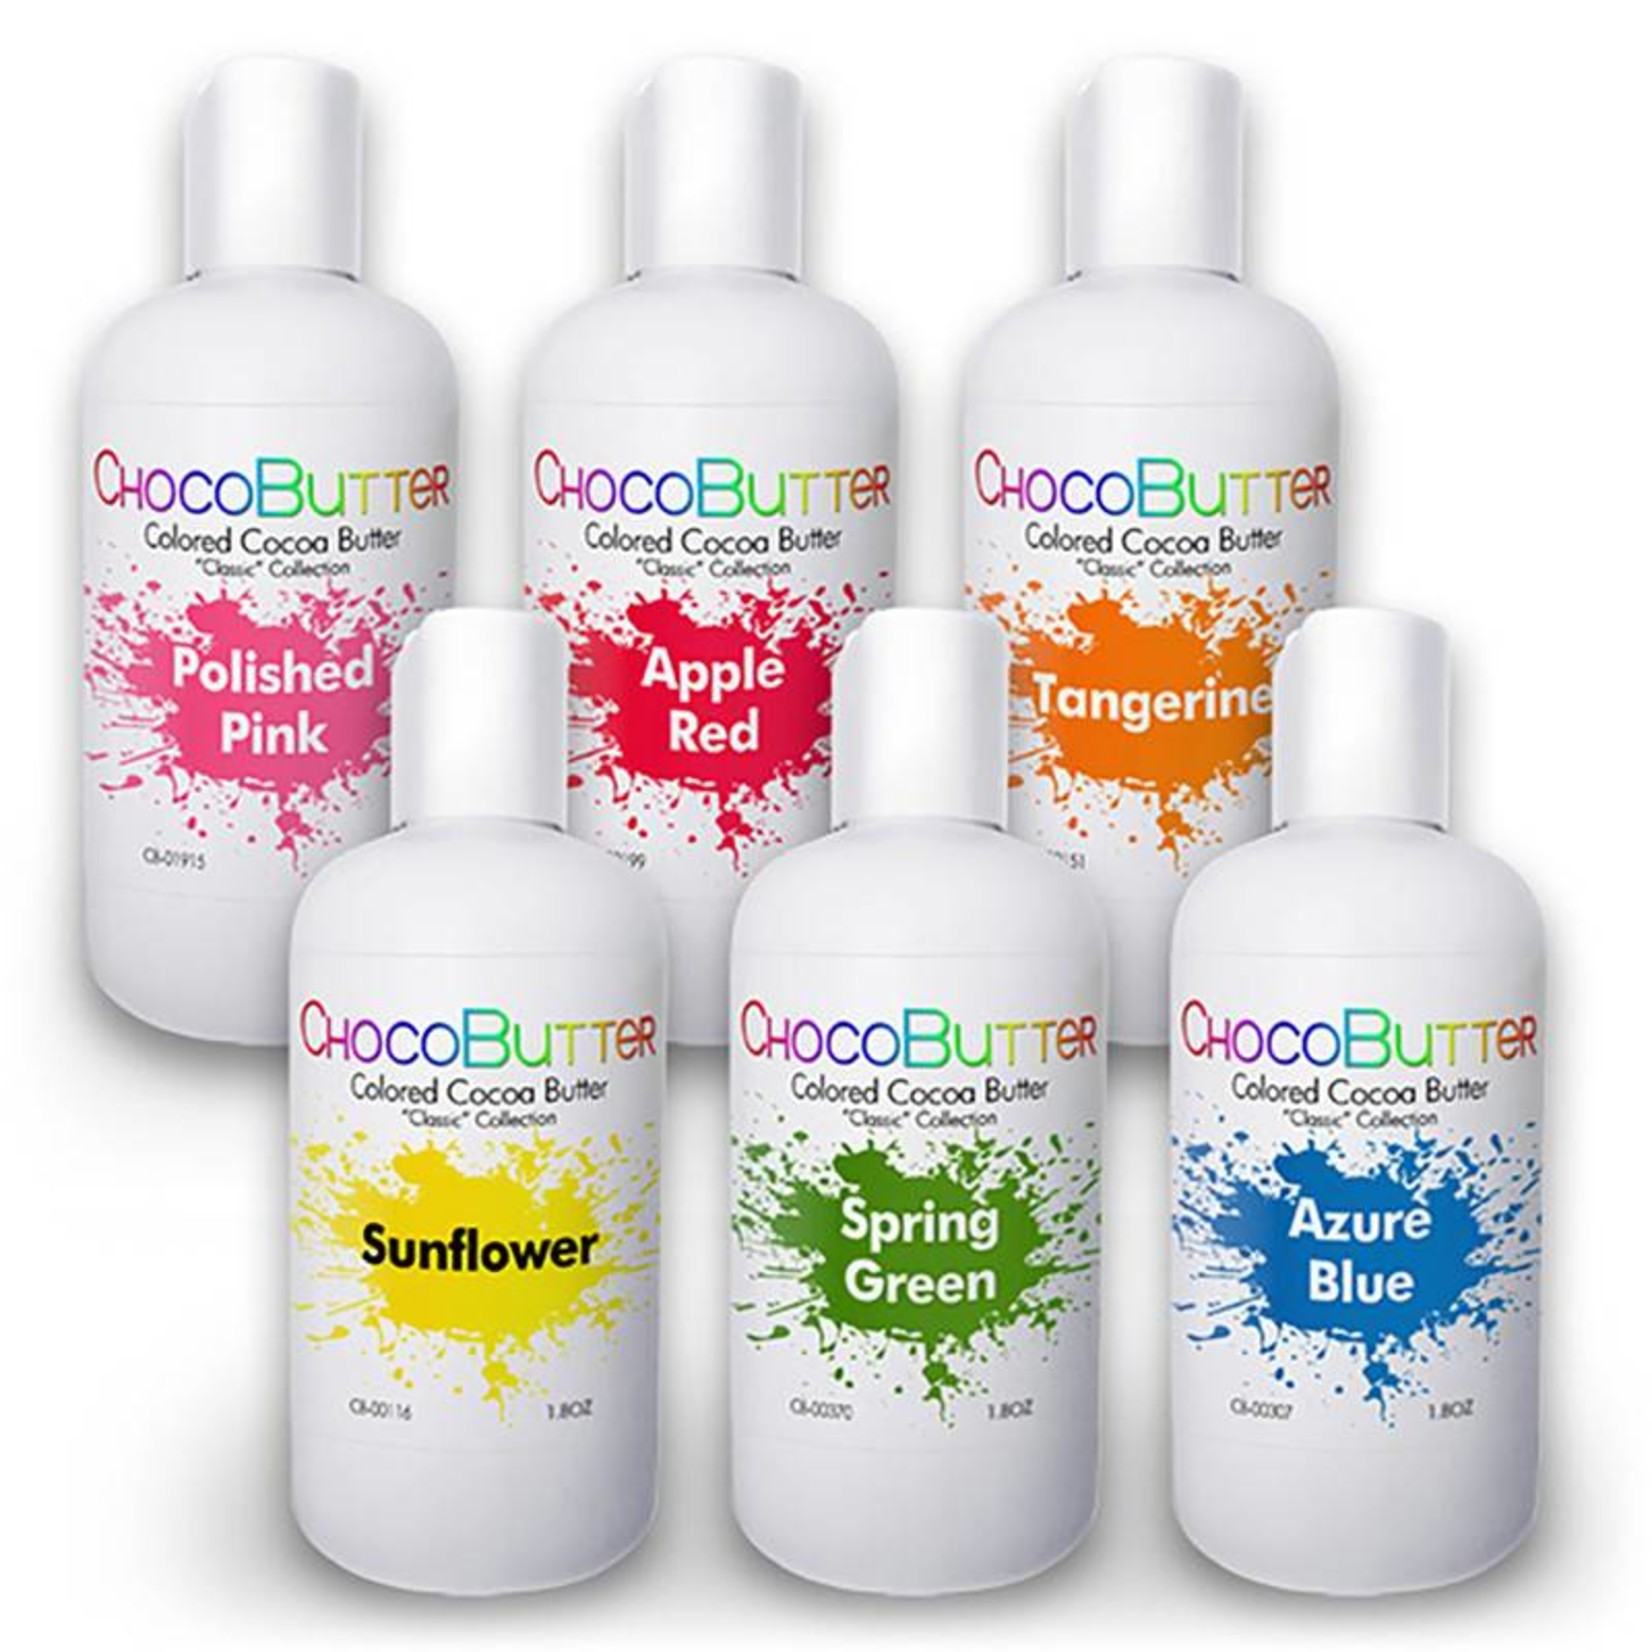 Chocobutter Chocobutter - Classic Starter Cocoa butter Kit- 6 colors - 1.8oz